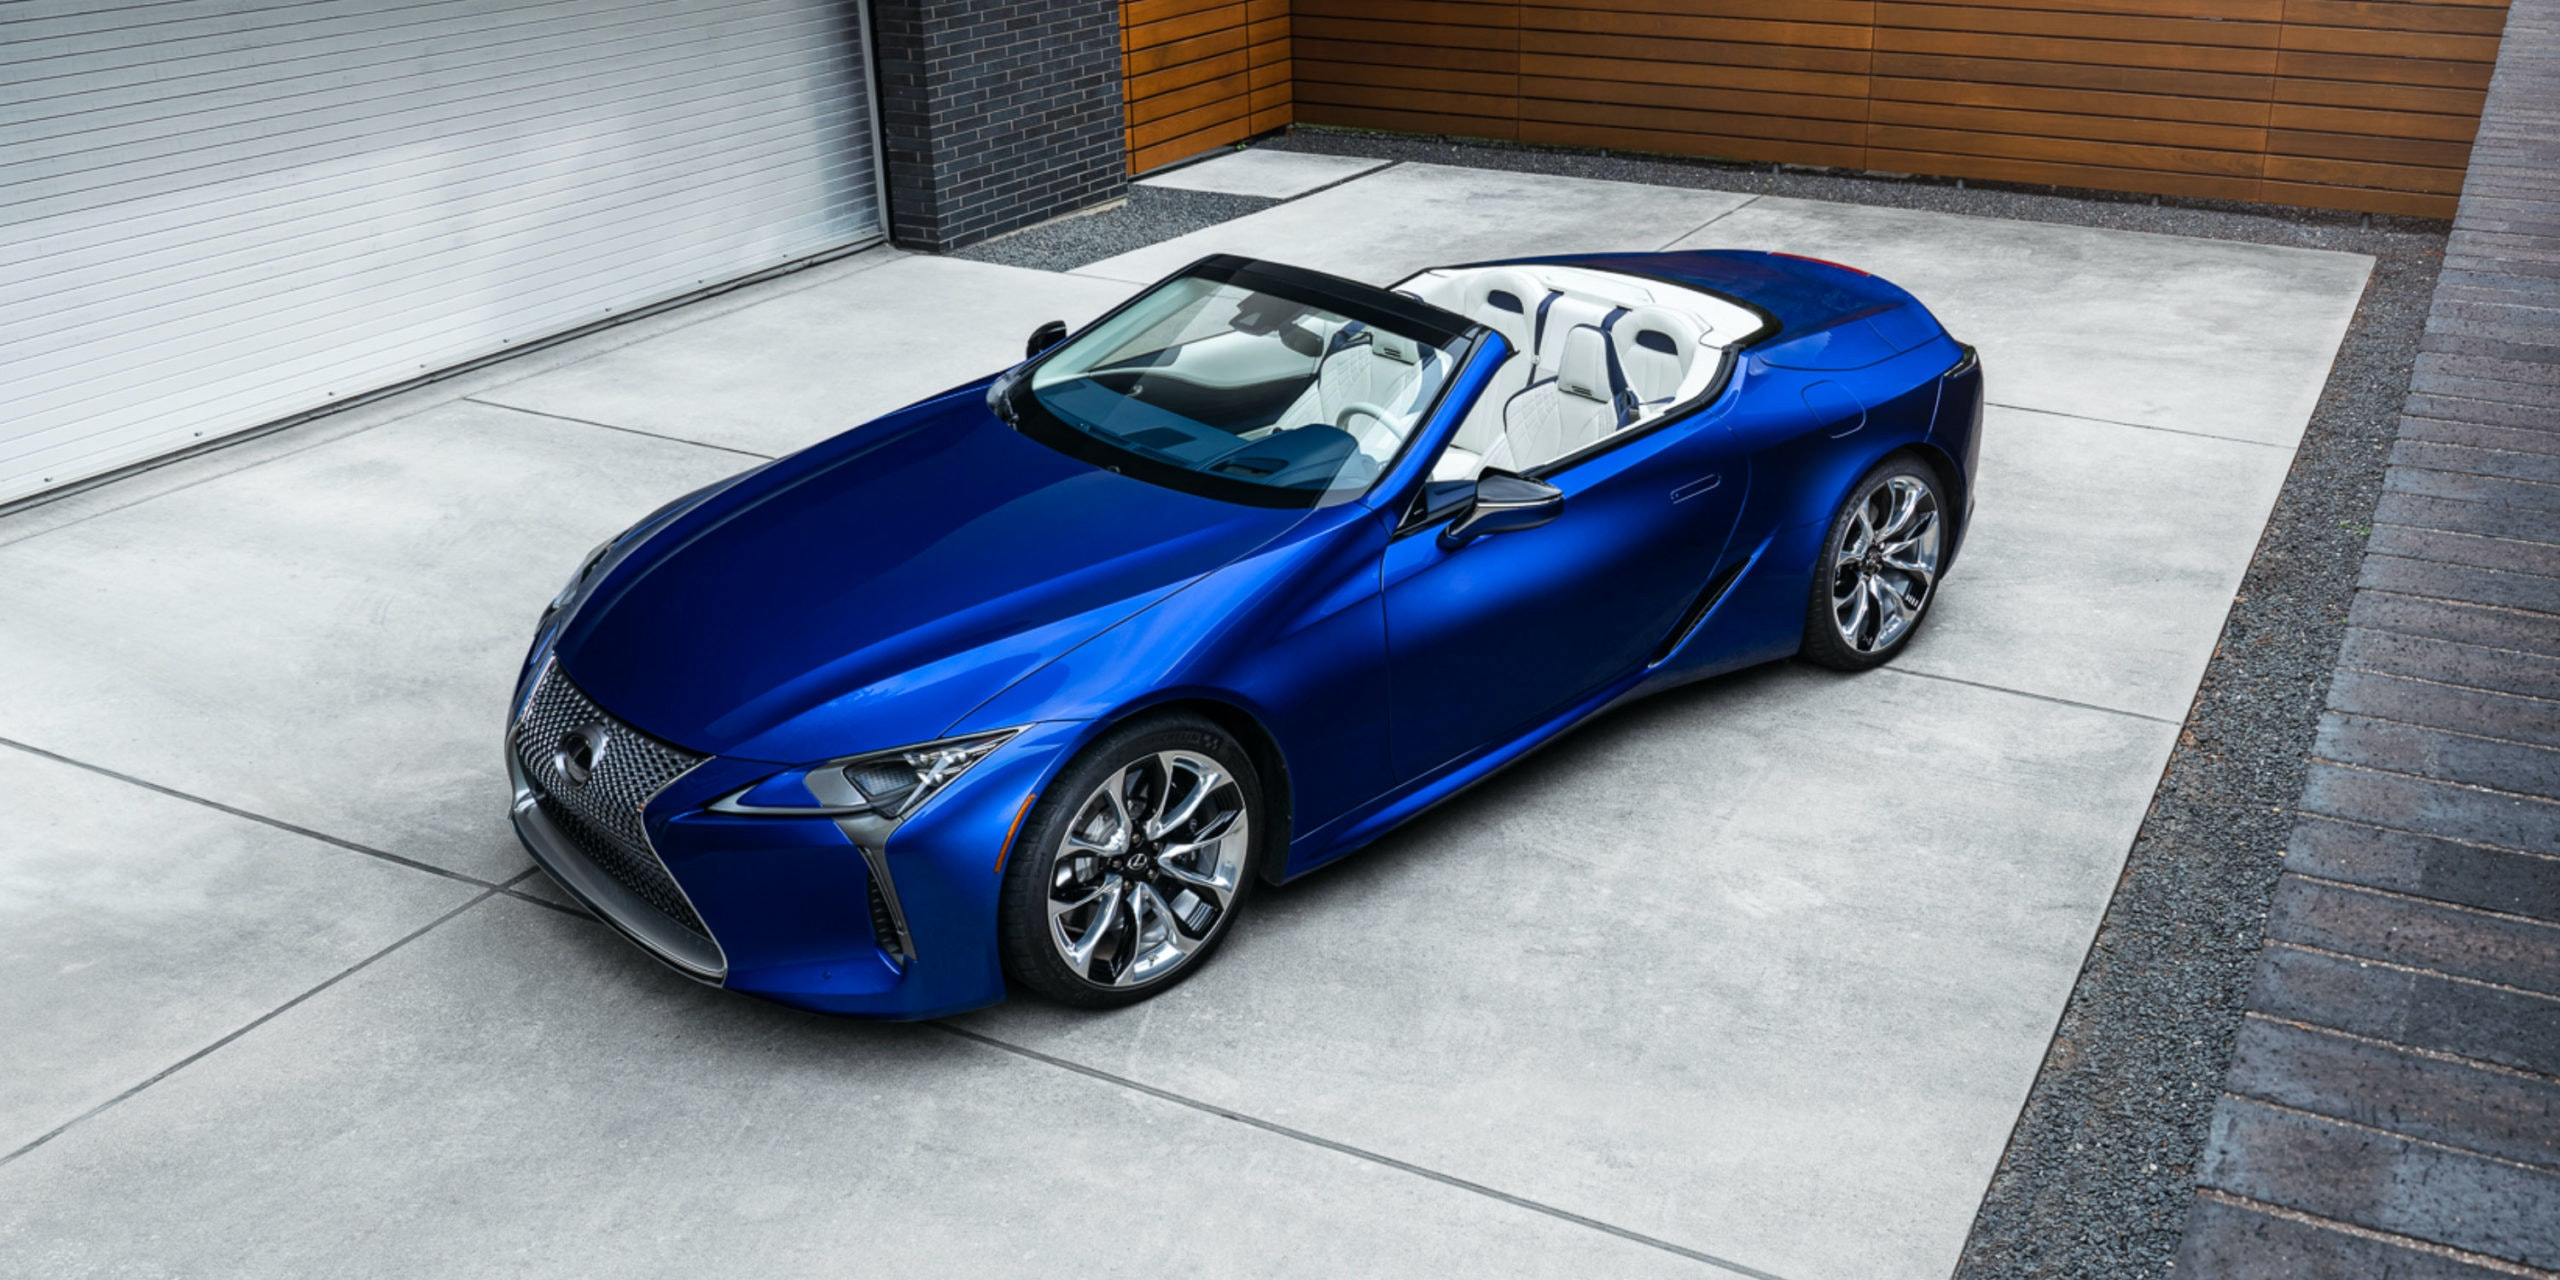 2021 Lexus Lc Coupe And Convertible Prices And Specs Revealed Carwow